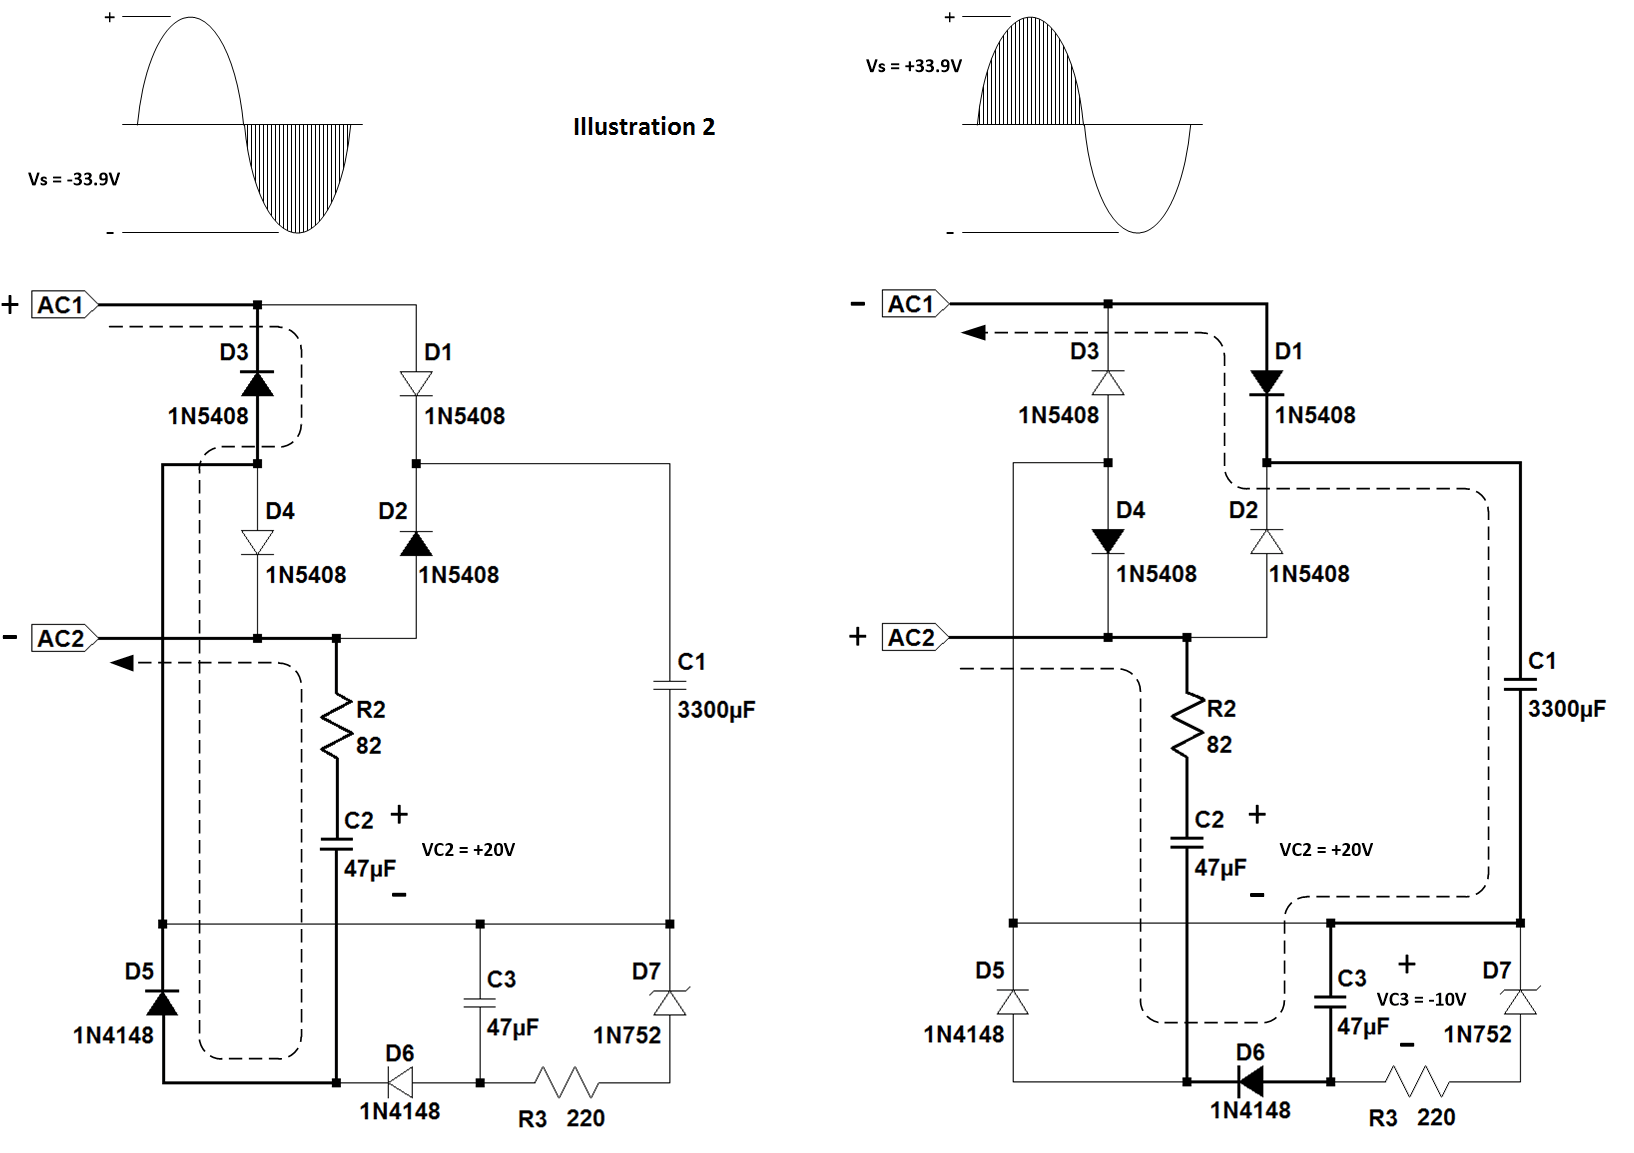 hight resolution of for this supply to work correctly the transformer must have a secondary voltage of at least 18v rms see illustration 2 below